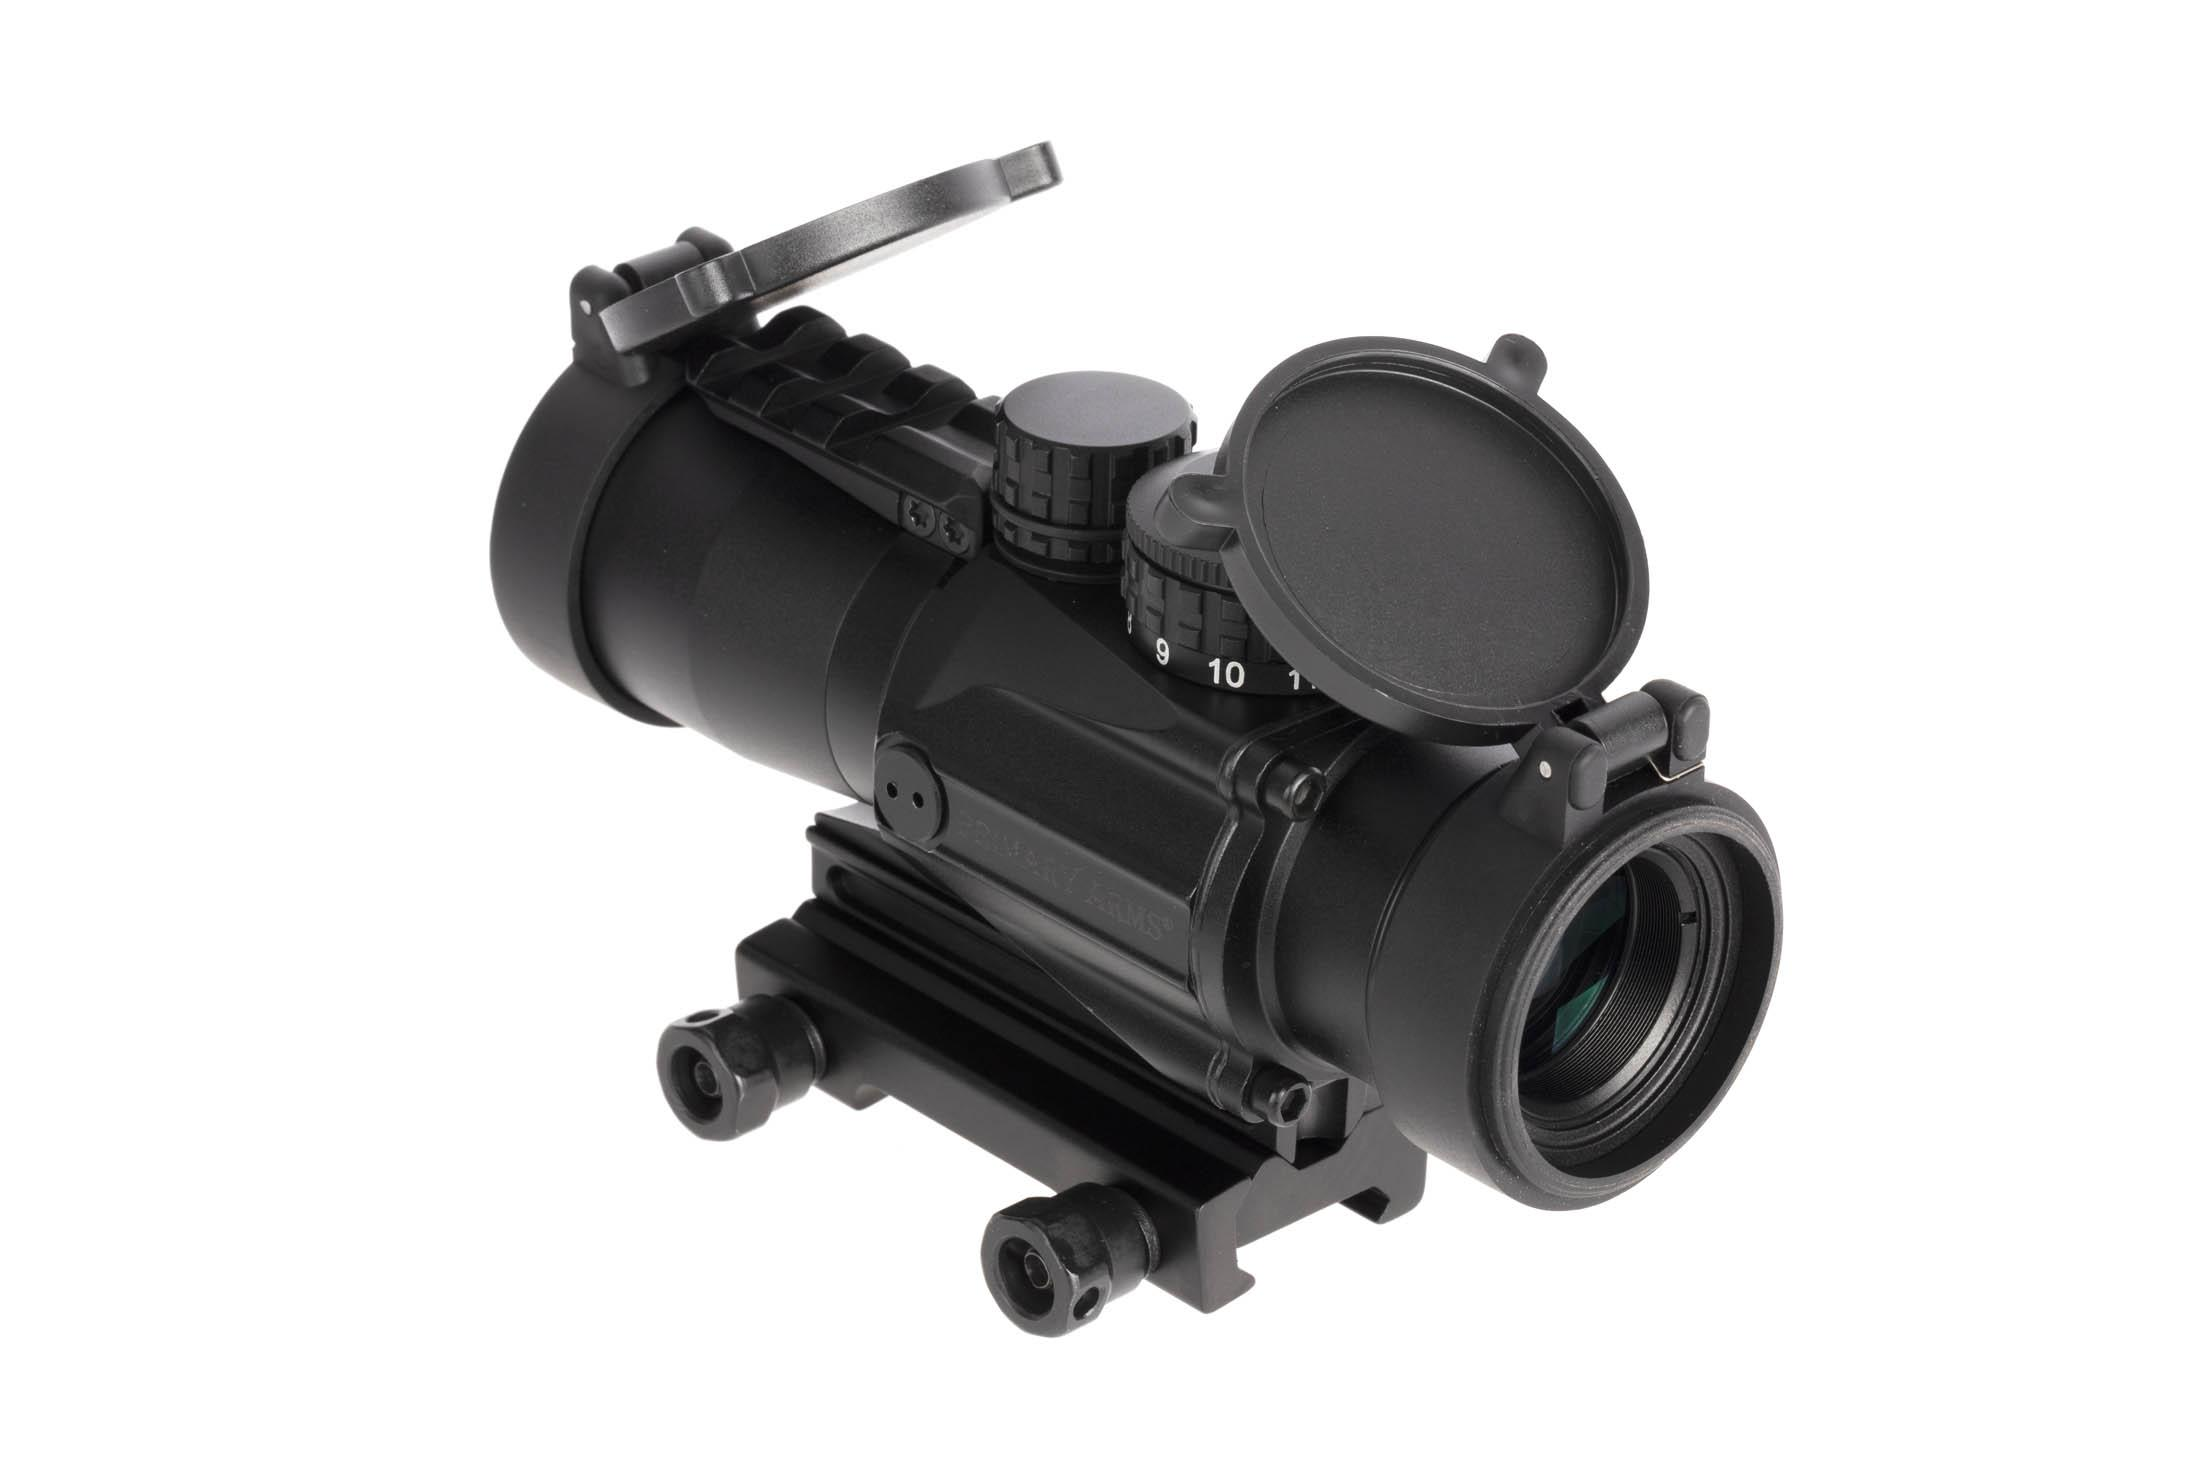 Primary Arms Gen 2 3x prism scope with 5.56 ACSS CQB-M2 reticle ships with flip up lens covers and a thumbscrew mount